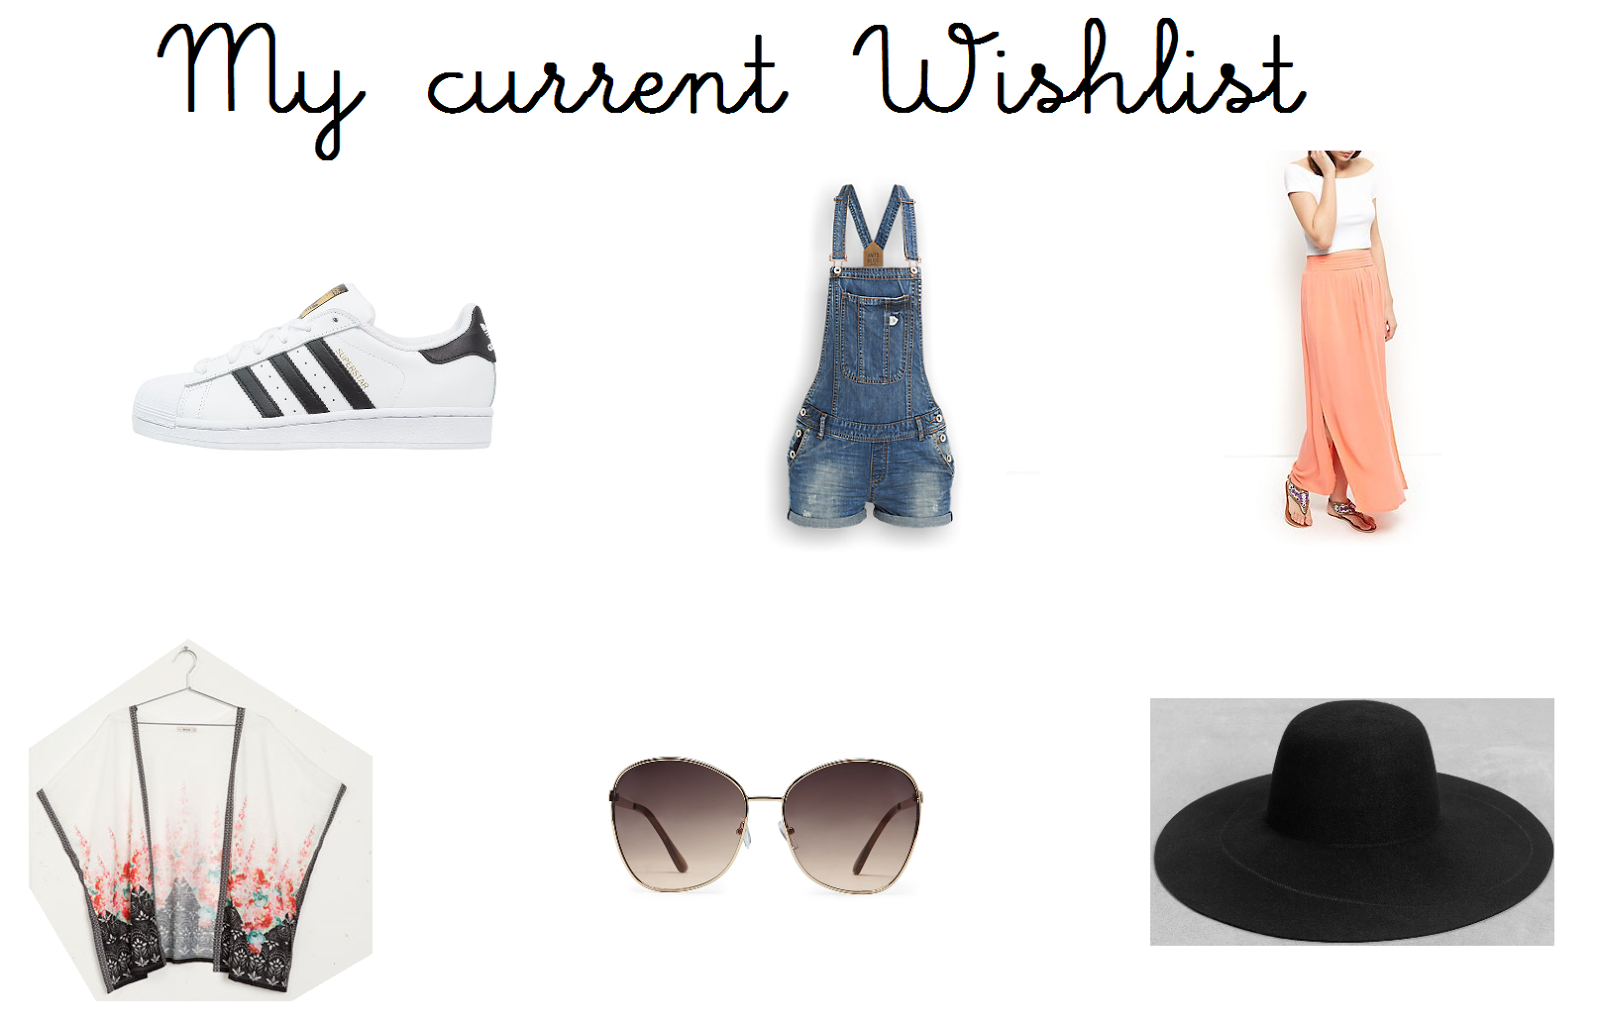 Current wishlist